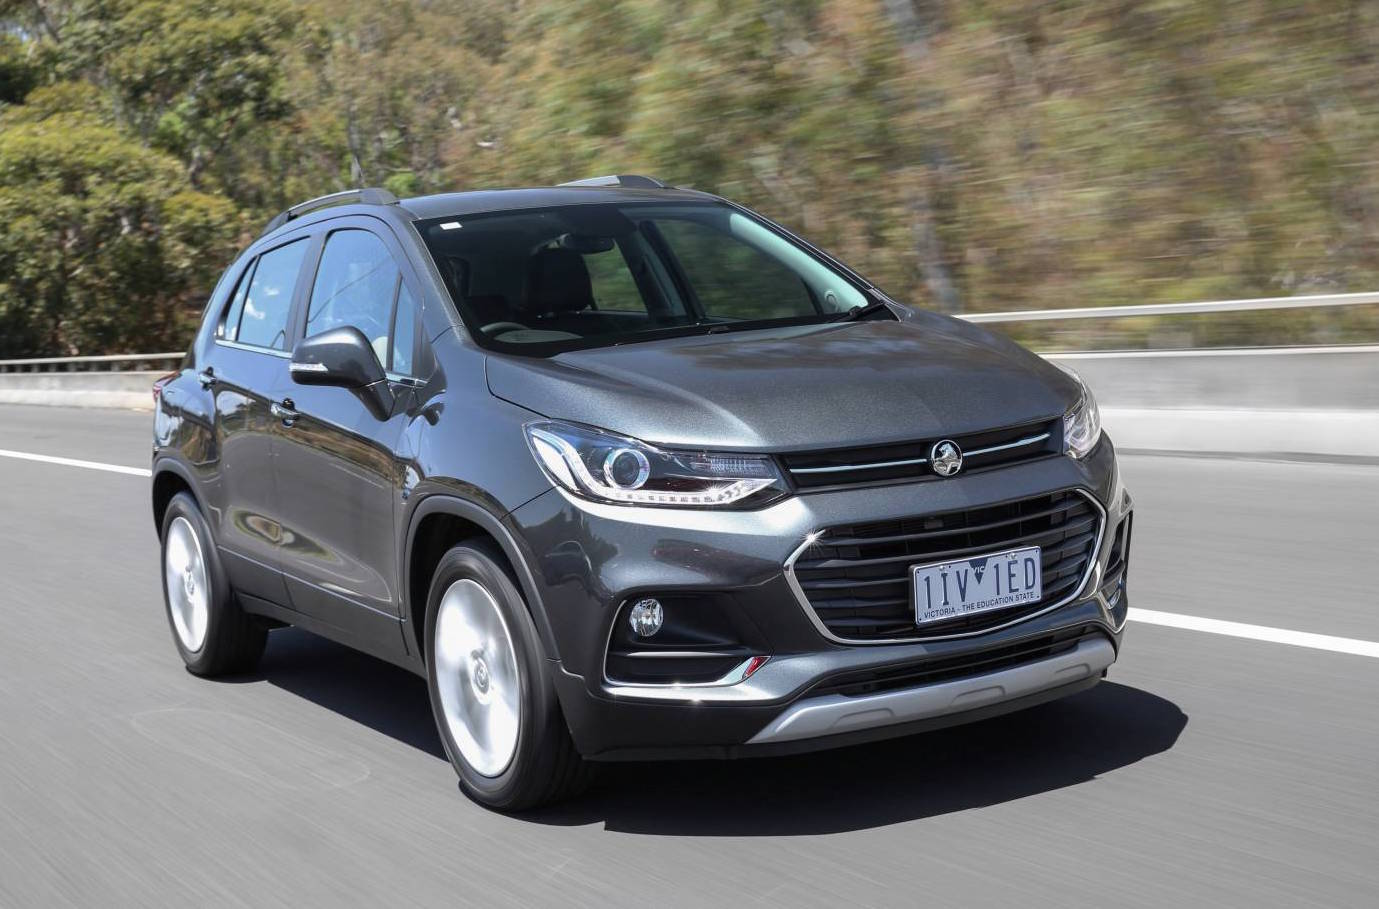 2017 holden trax now on sale in australia from 23 990 performancedrive. Black Bedroom Furniture Sets. Home Design Ideas